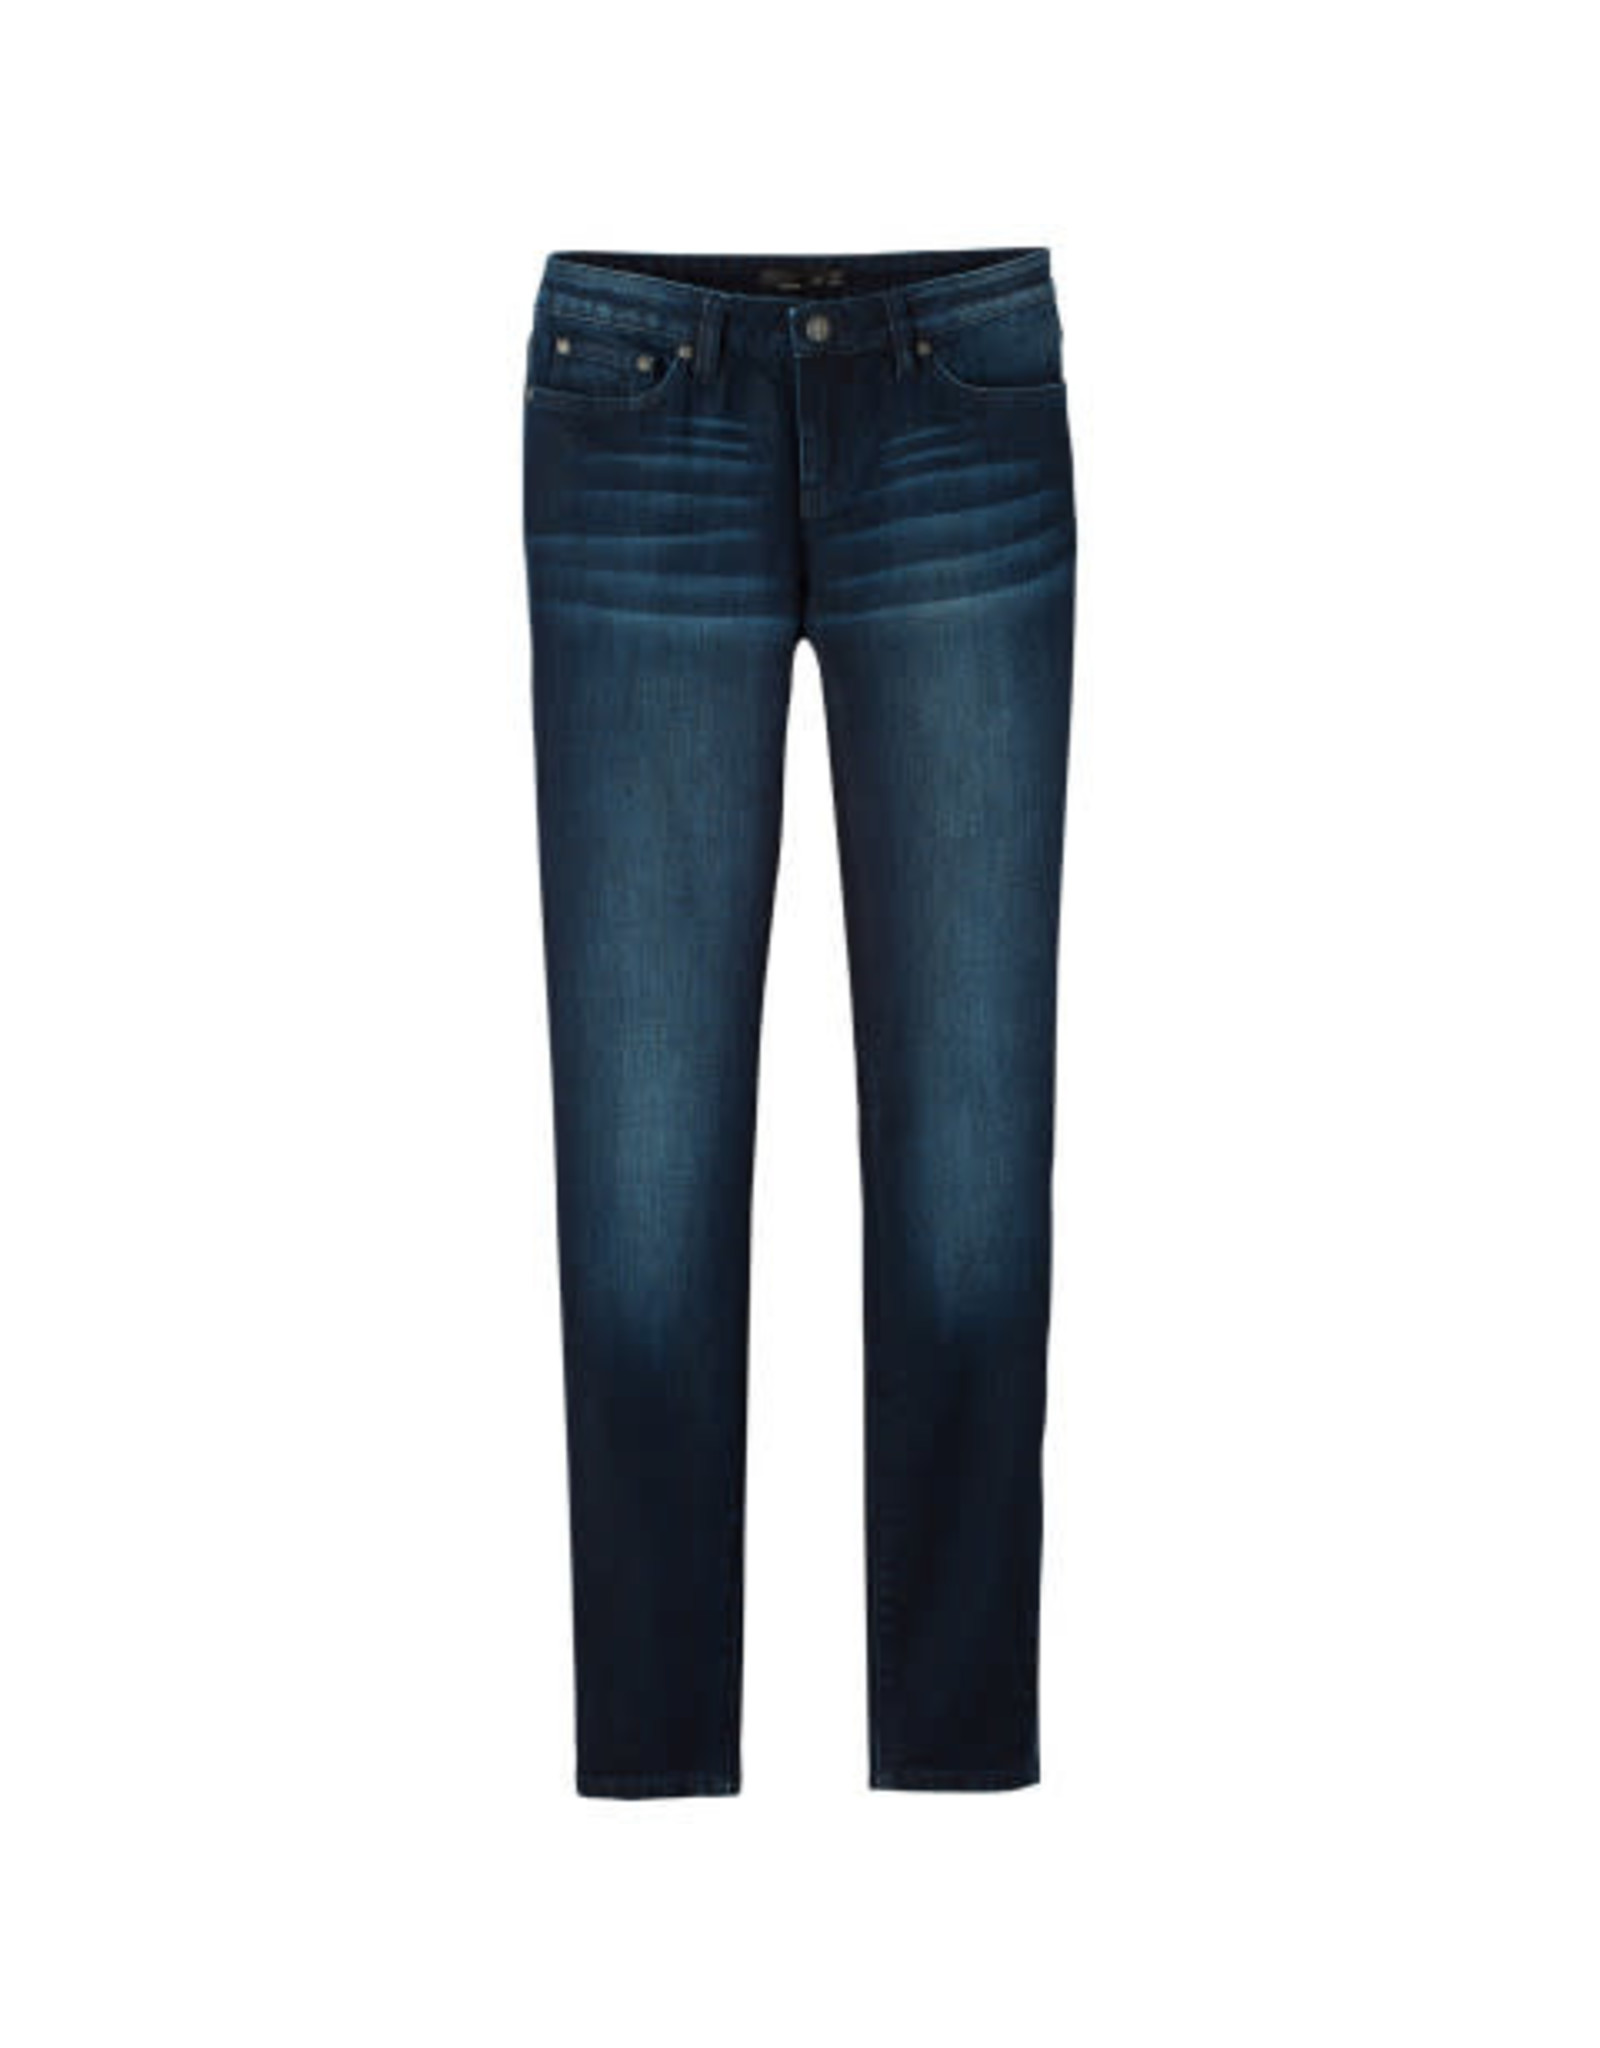 Prana Prana London Jean: Regular Inseam